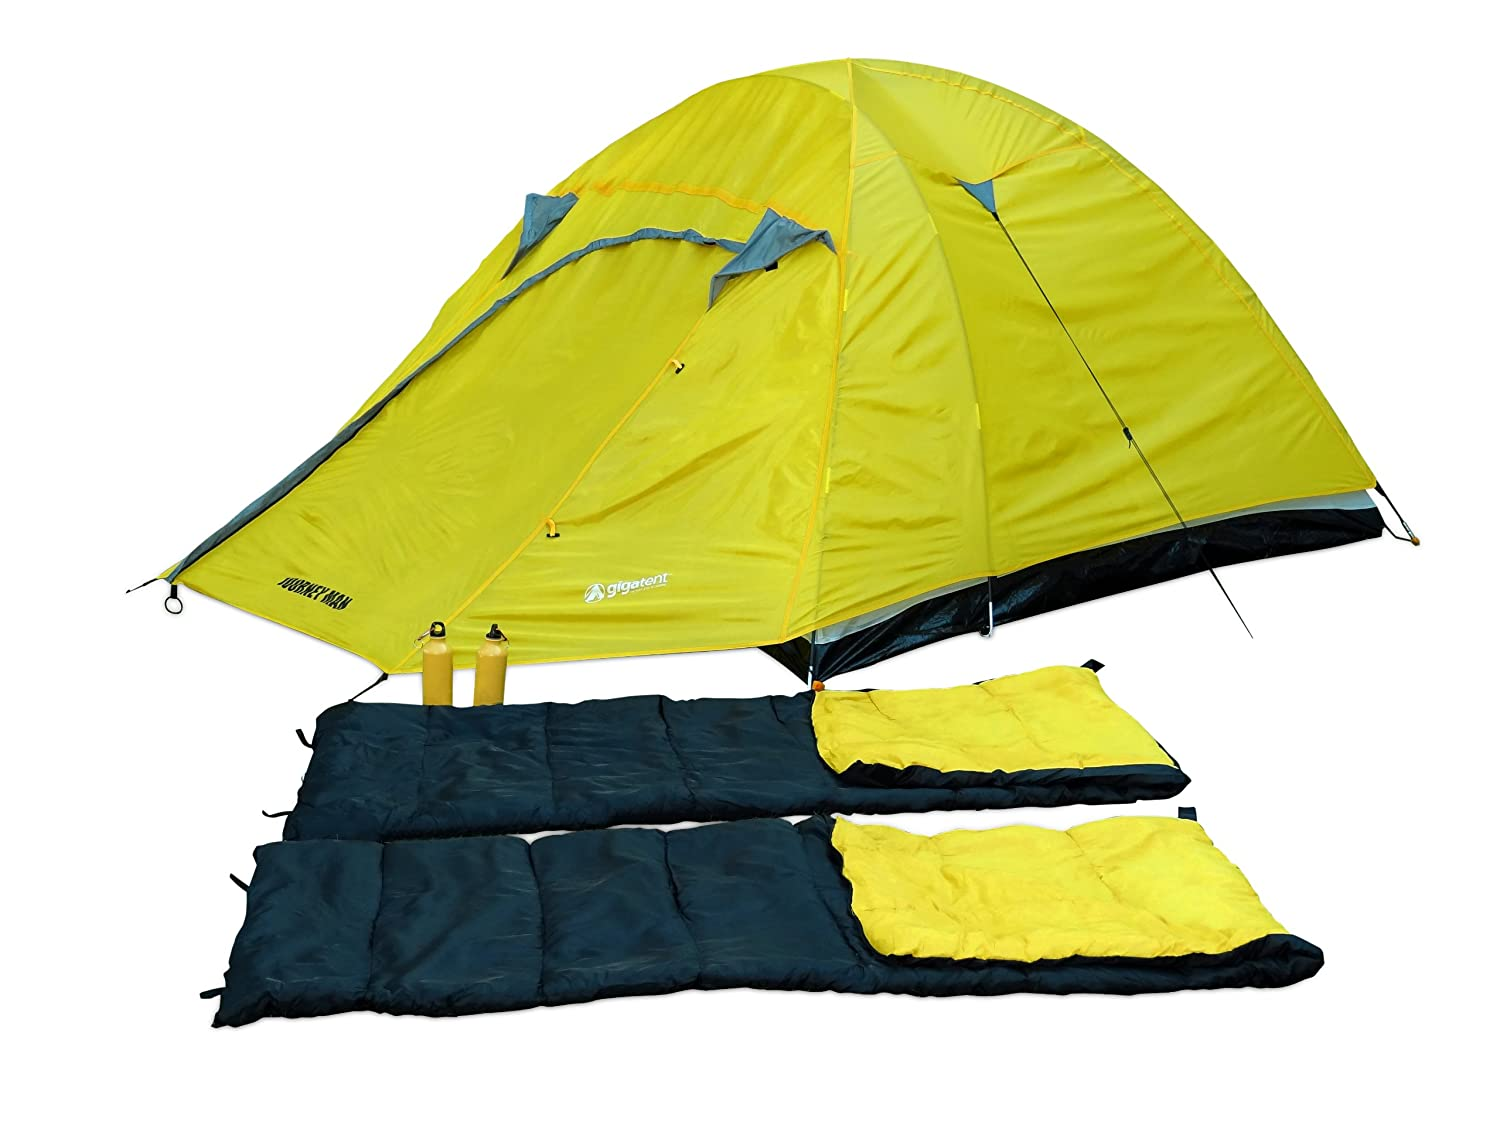 Amazon.com  GigaTent Journey Man Backpacking Tent Set  Sports u0026 Outdoors  sc 1 st  Amazon.com & Amazon.com : GigaTent Journey Man Backpacking Tent Set : Sports ...